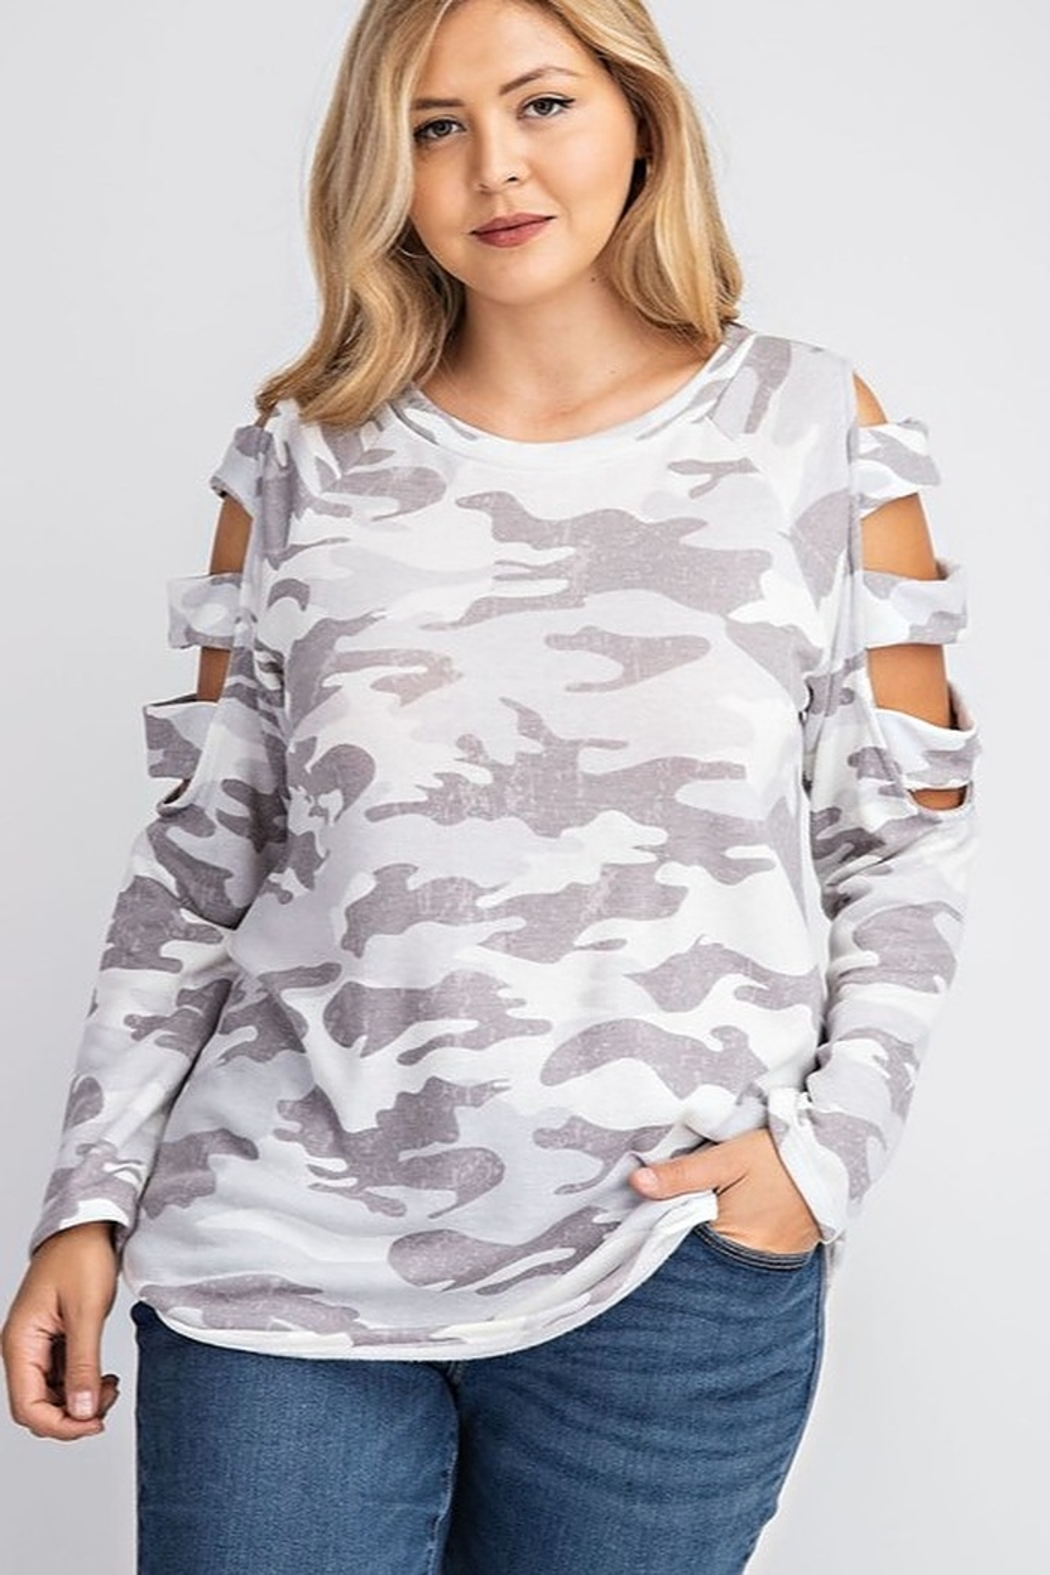 143 Story BRUSHED CAMO PRINT TOP - Front Full Image